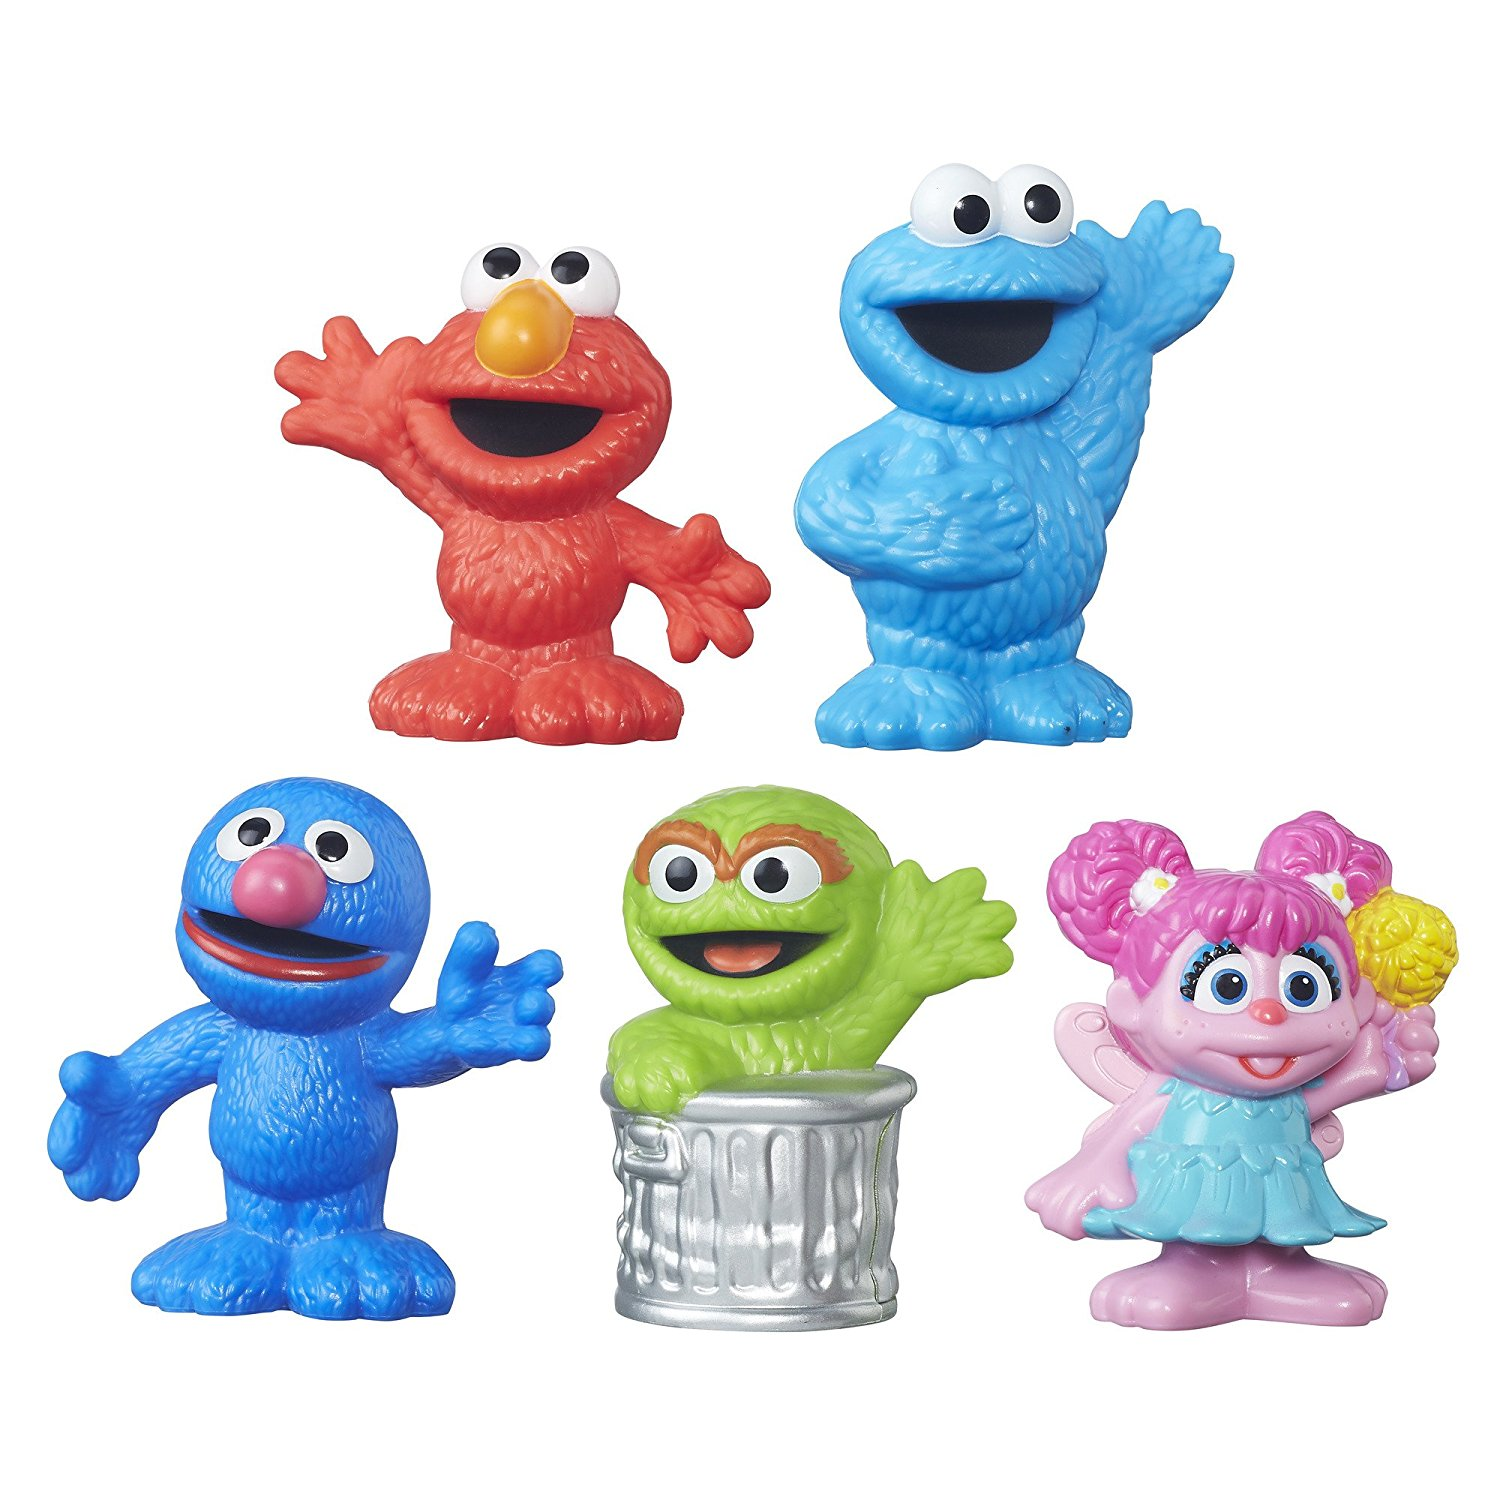 Playskool Collector Pack 5 Figures Sized For Little Hands By Sesame Street